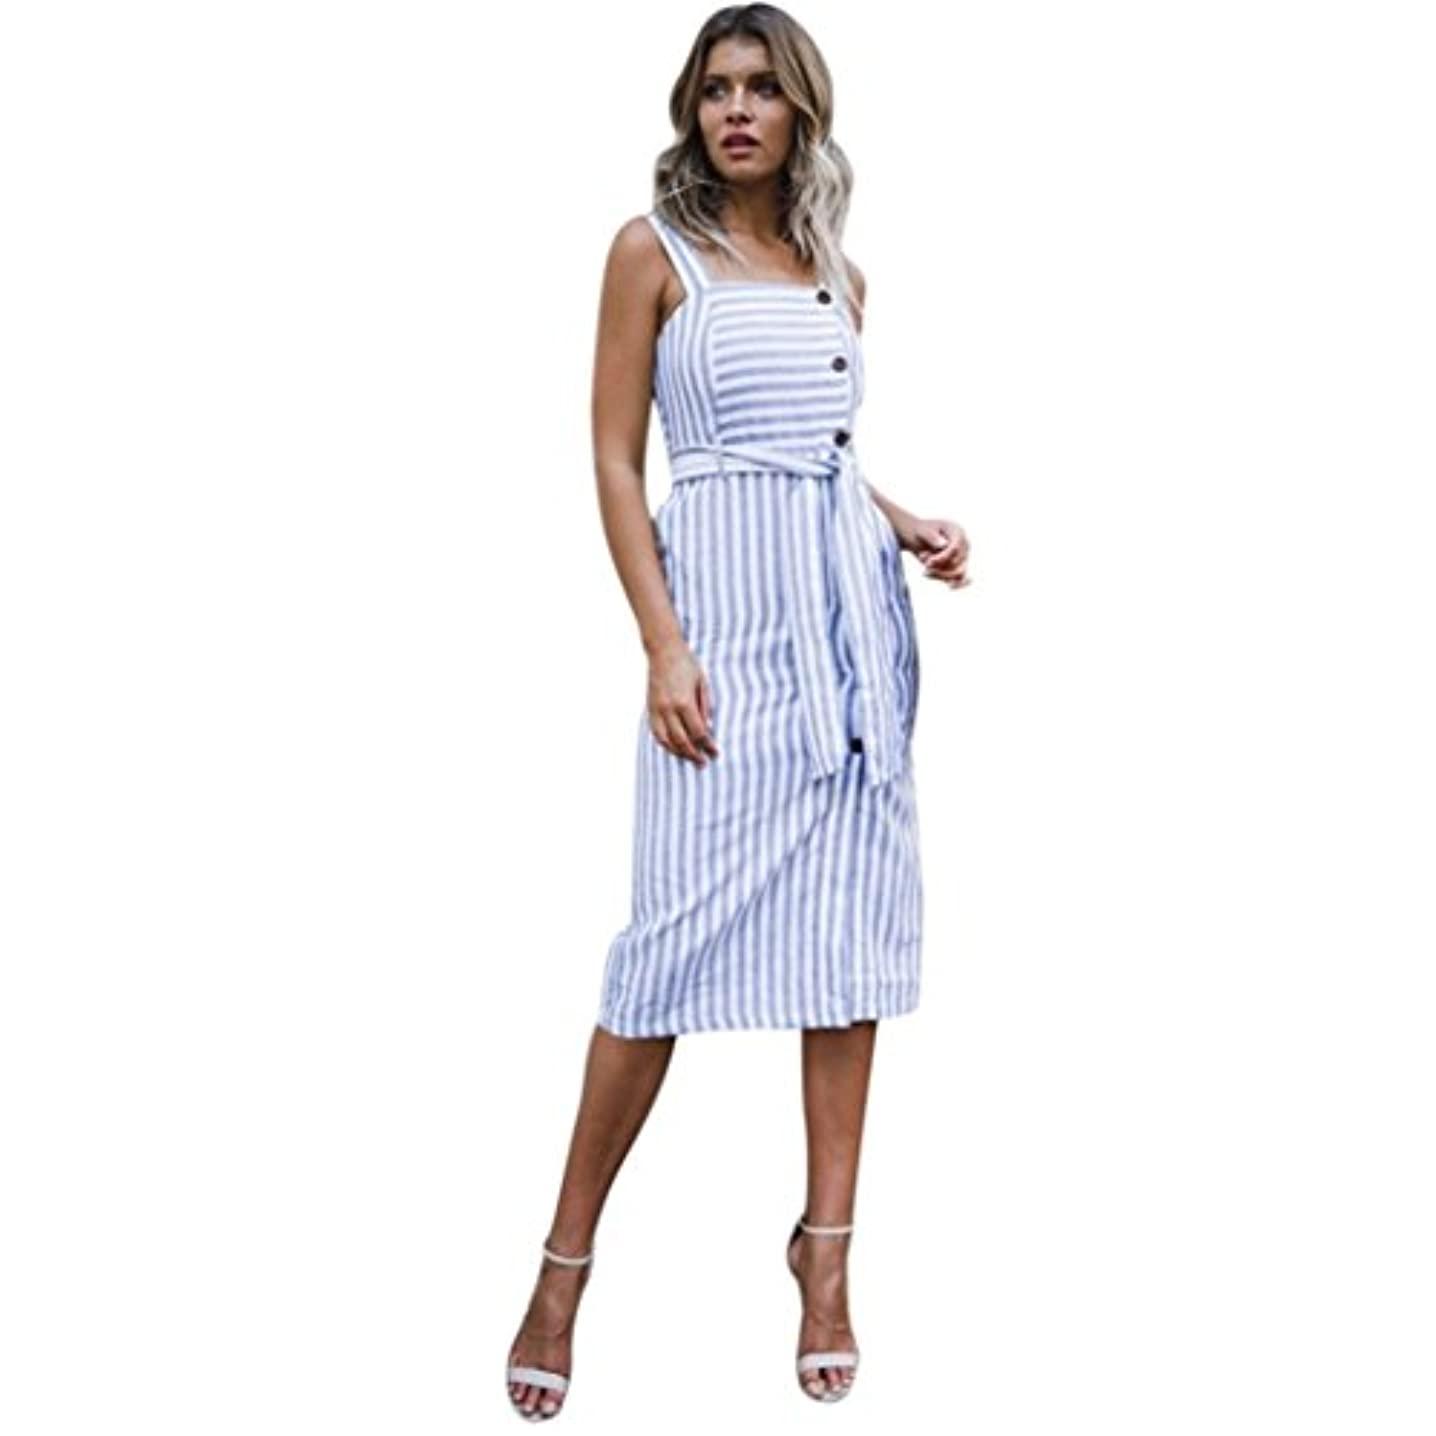 減少放映再生的SakuraBest Womens Summer Striped Button Down Dress,Shoulder Strap Knee-Length Dress for Girls (L)